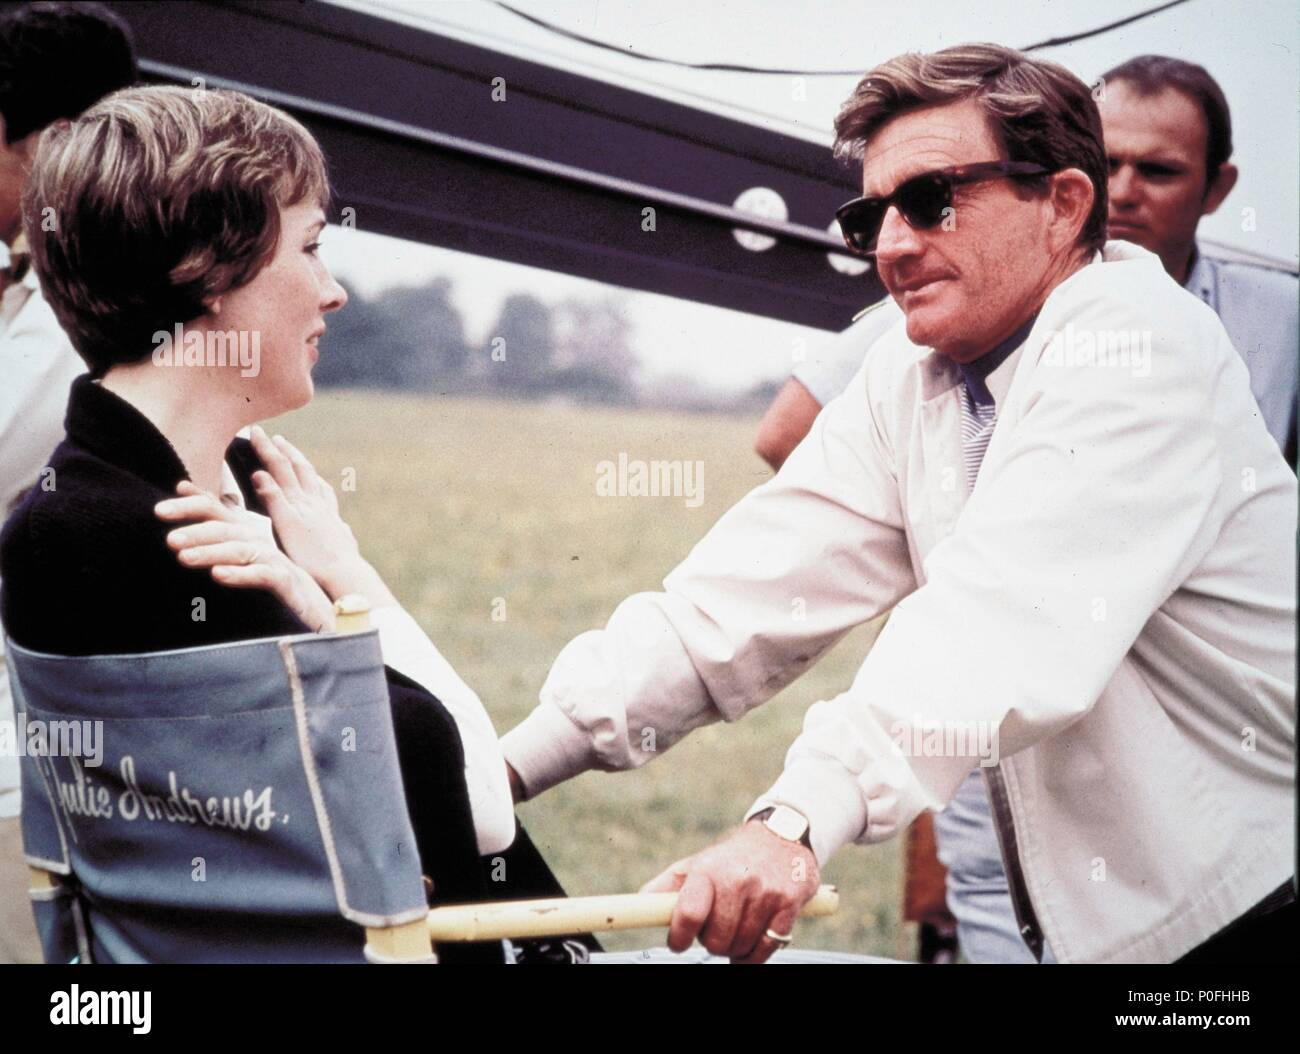 Original Film Title: DARLING LILI.  English Title: DARLING LILI.  Film Director: BLAKE EDWARDS.  Year: 1970.  Stars: JULIE ANDREWS; BLAKE EDWARDS. Credit: PARAMOUNT PICTURES / Album - Stock Image